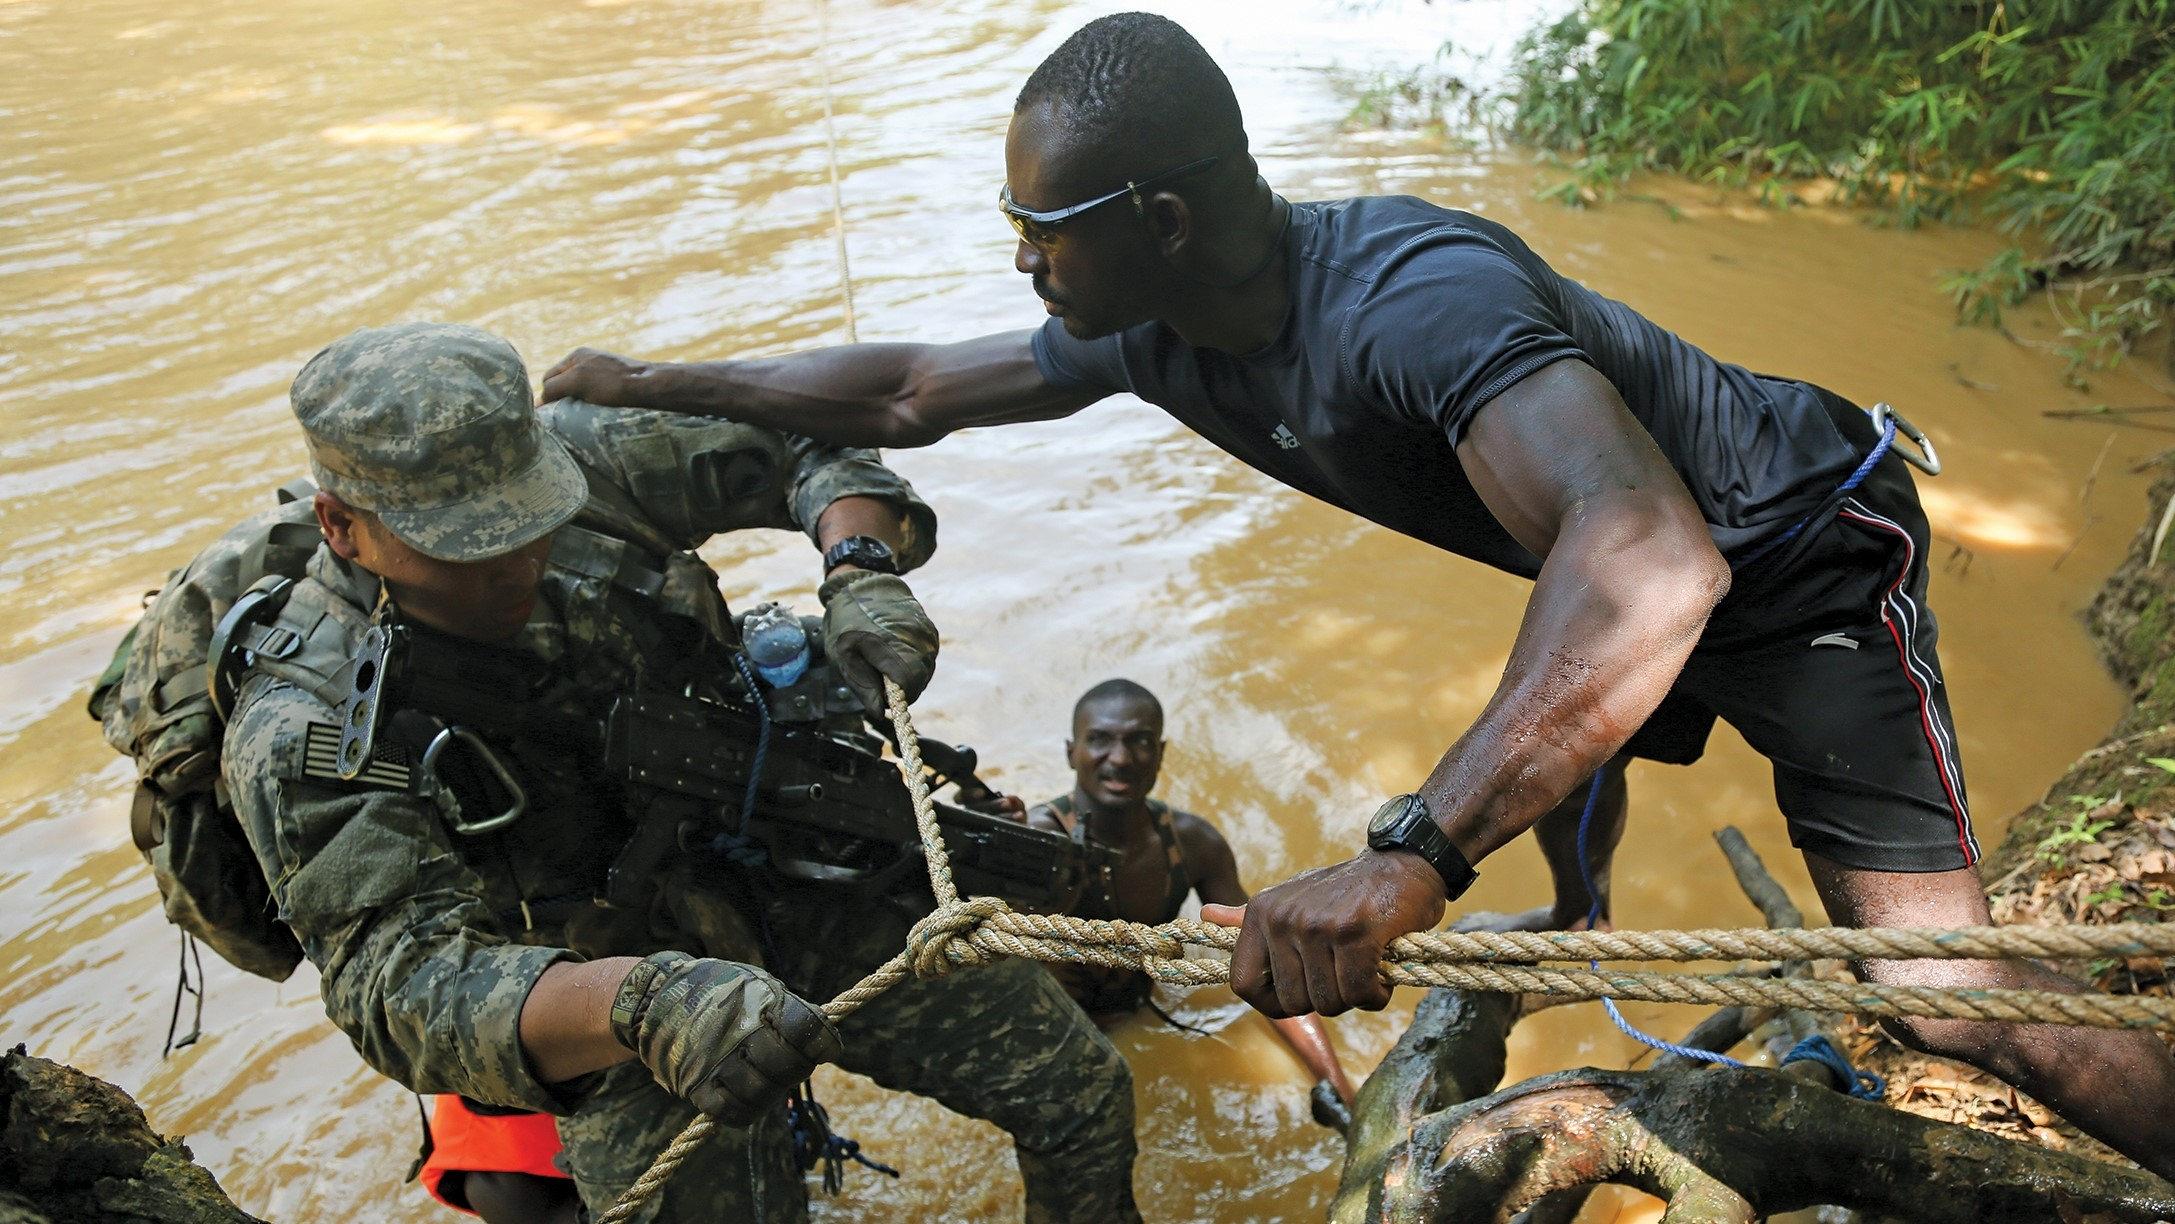 A Ghanaian Armed Forces trainer assists a U.S. soldier with the 101st Airborne Division (Air Assault) during an exercise in Ghana.